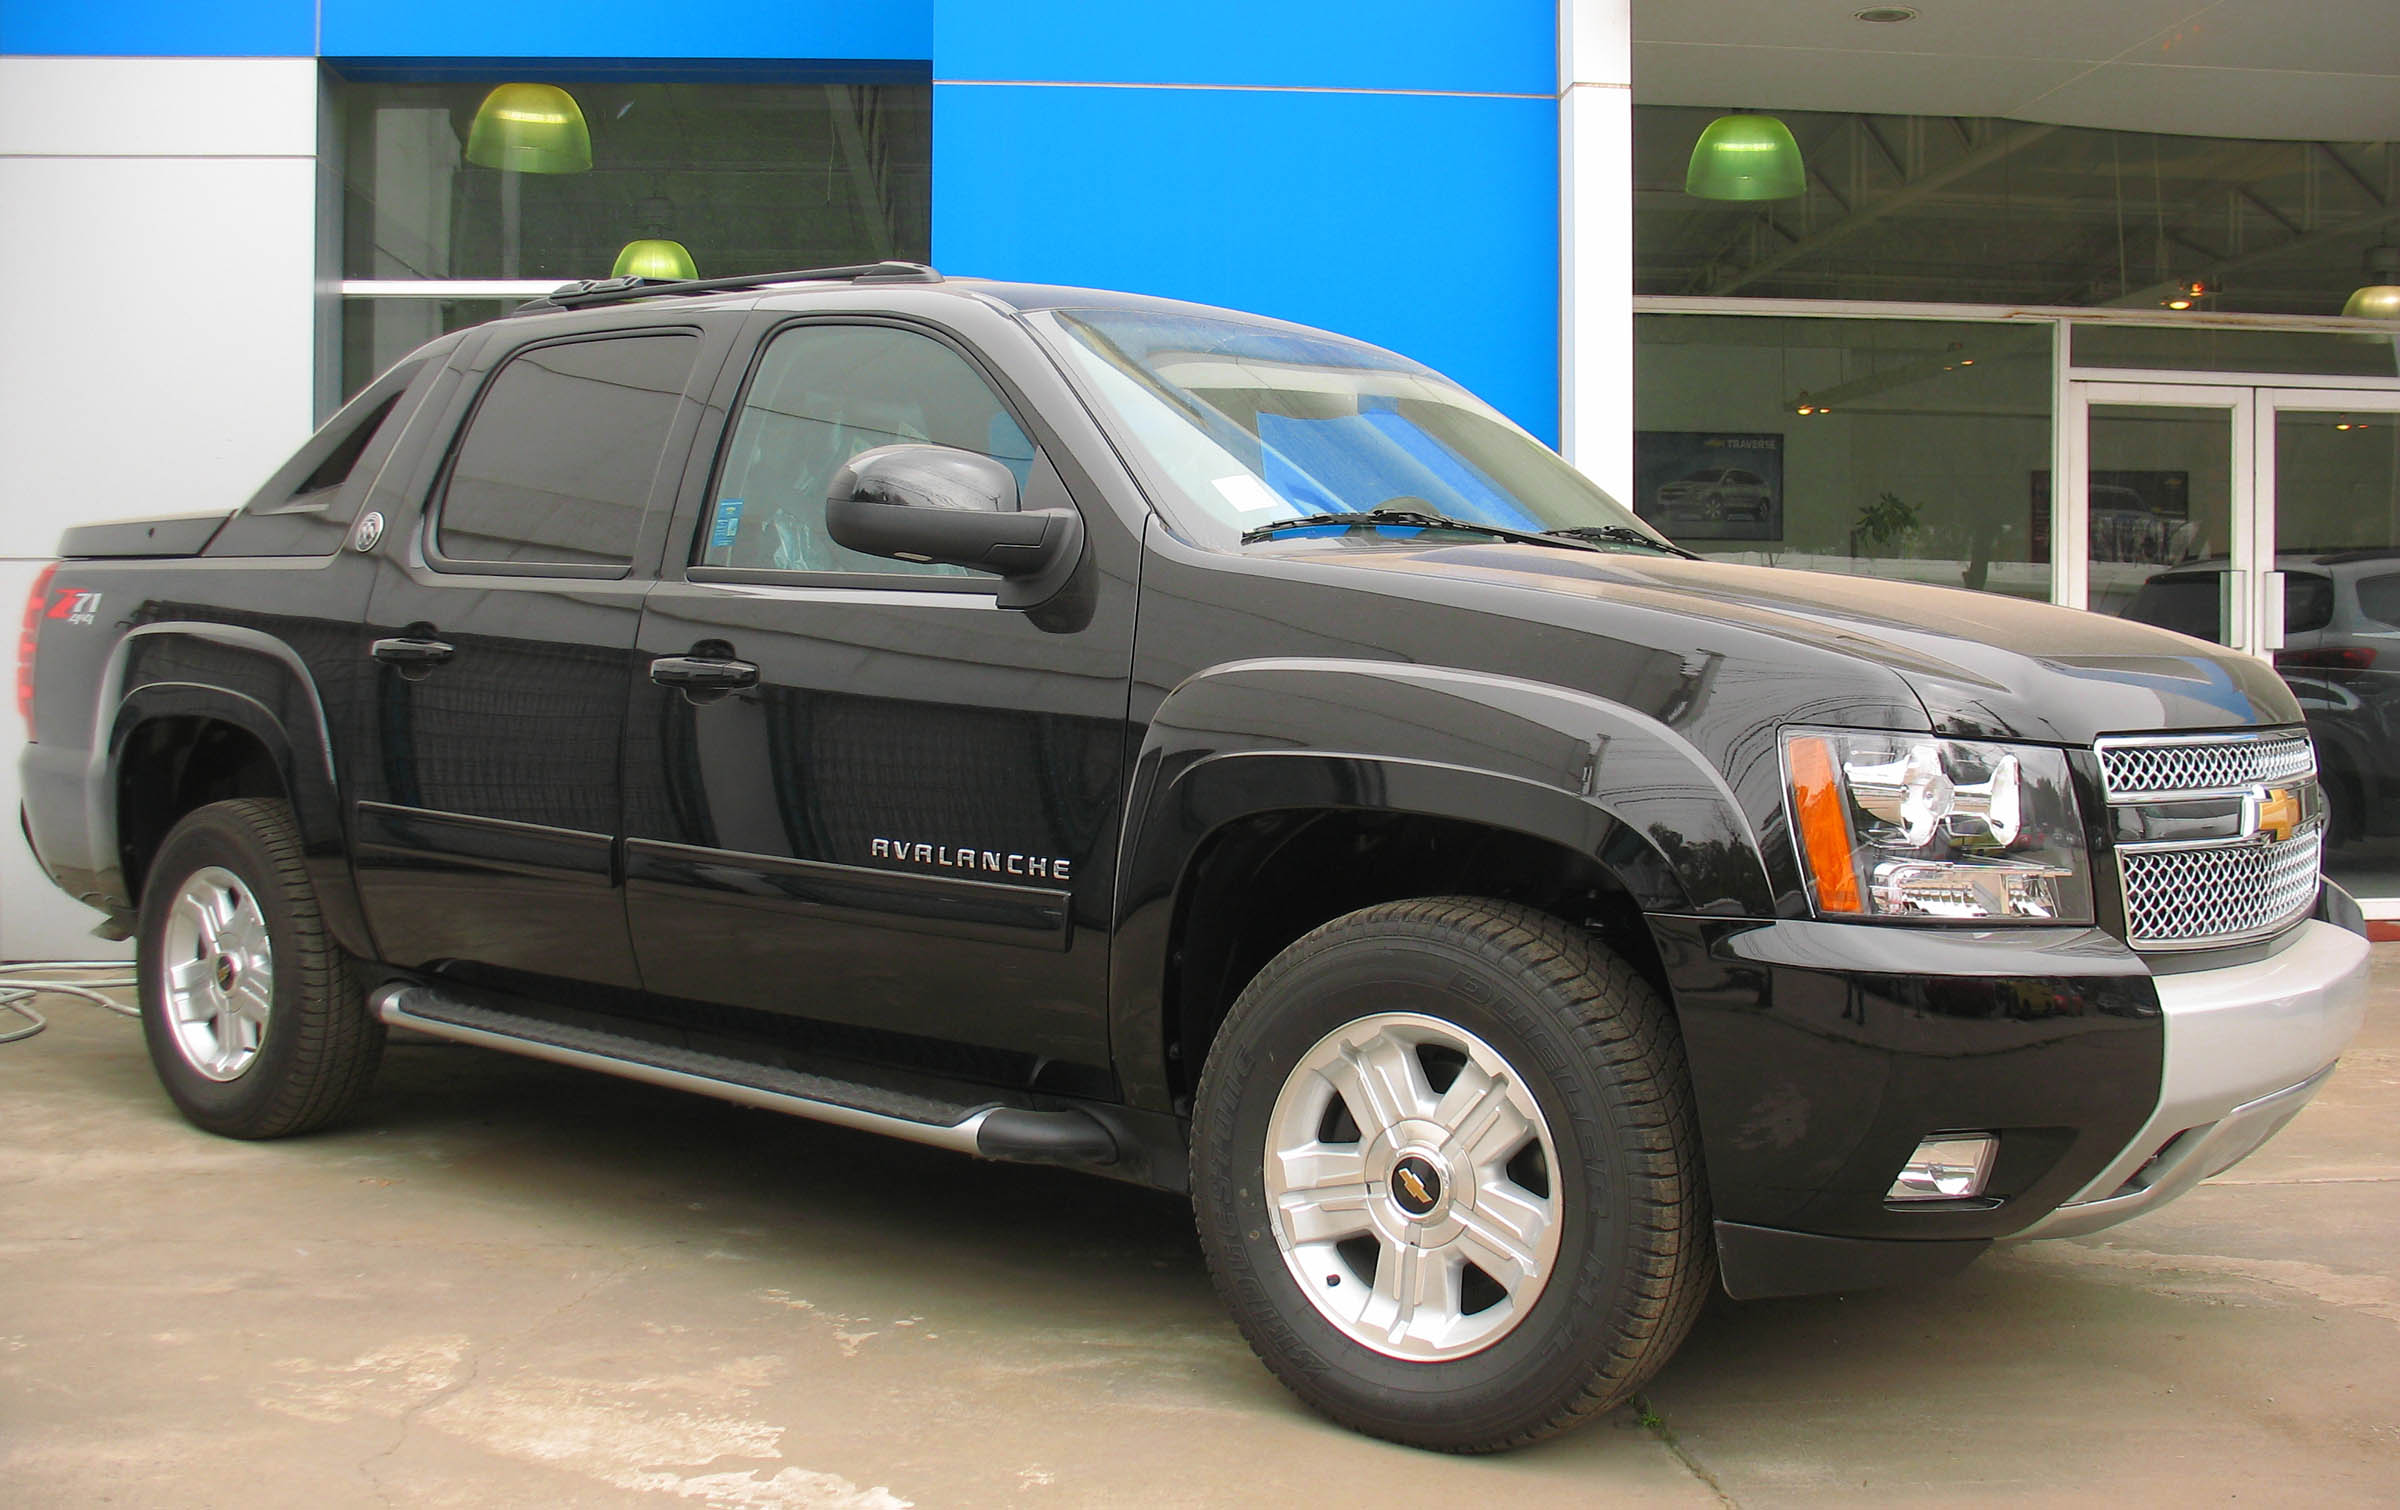 Filechevrolet avalanche z71 black diamond last edition 2013g filechevrolet avalanche z71 black diamond last edition 2013g sciox Image collections